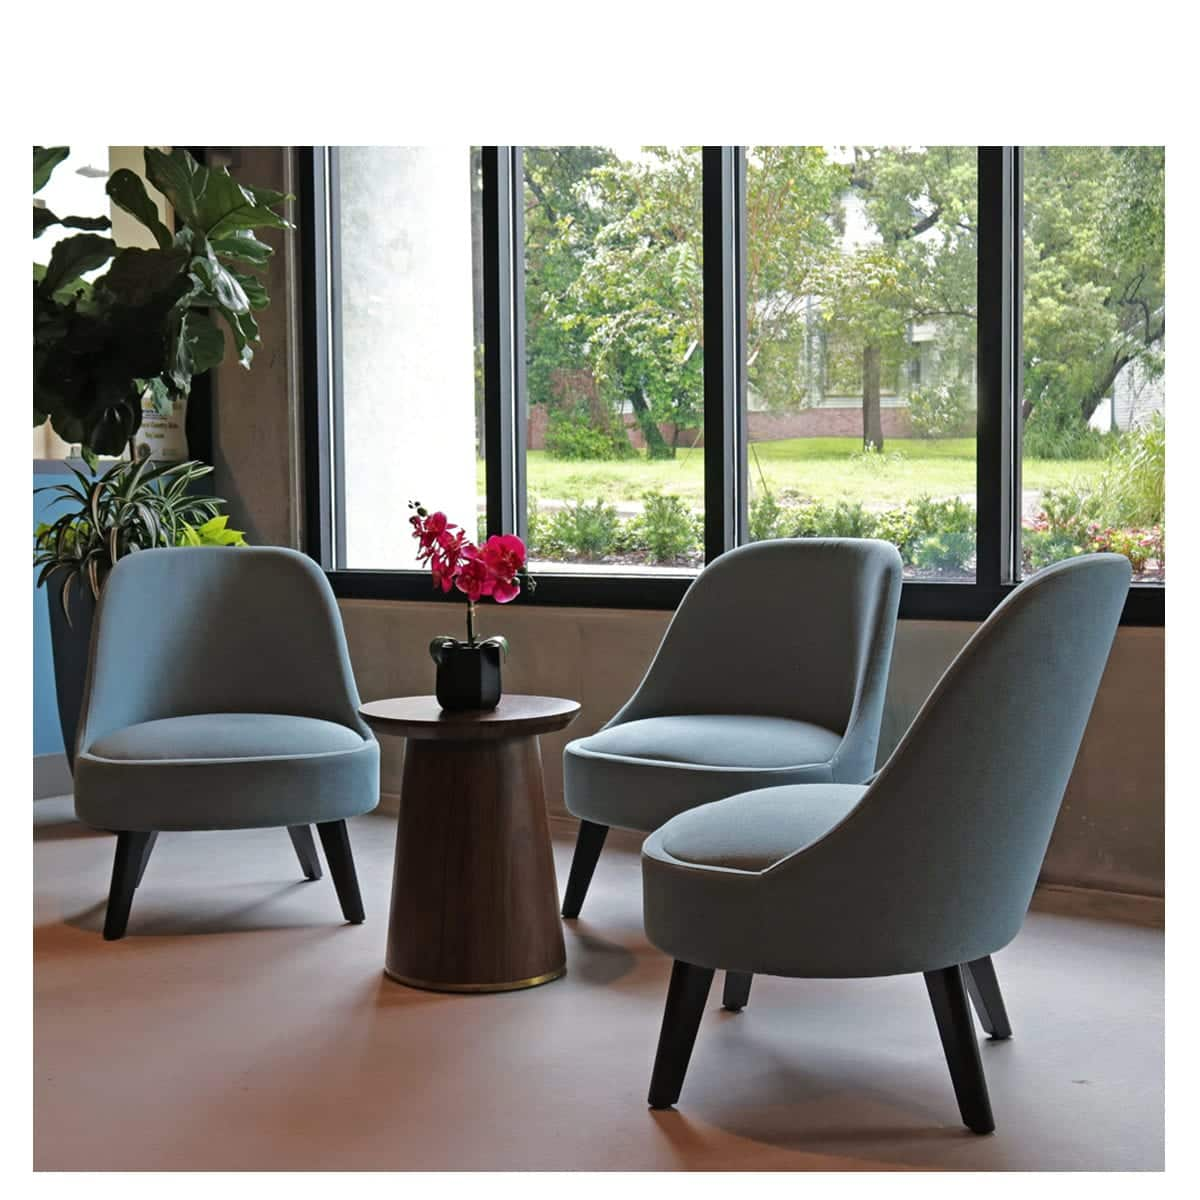 Stupendous Solo J Custom Hospitality Seating Aceray Caraccident5 Cool Chair Designs And Ideas Caraccident5Info